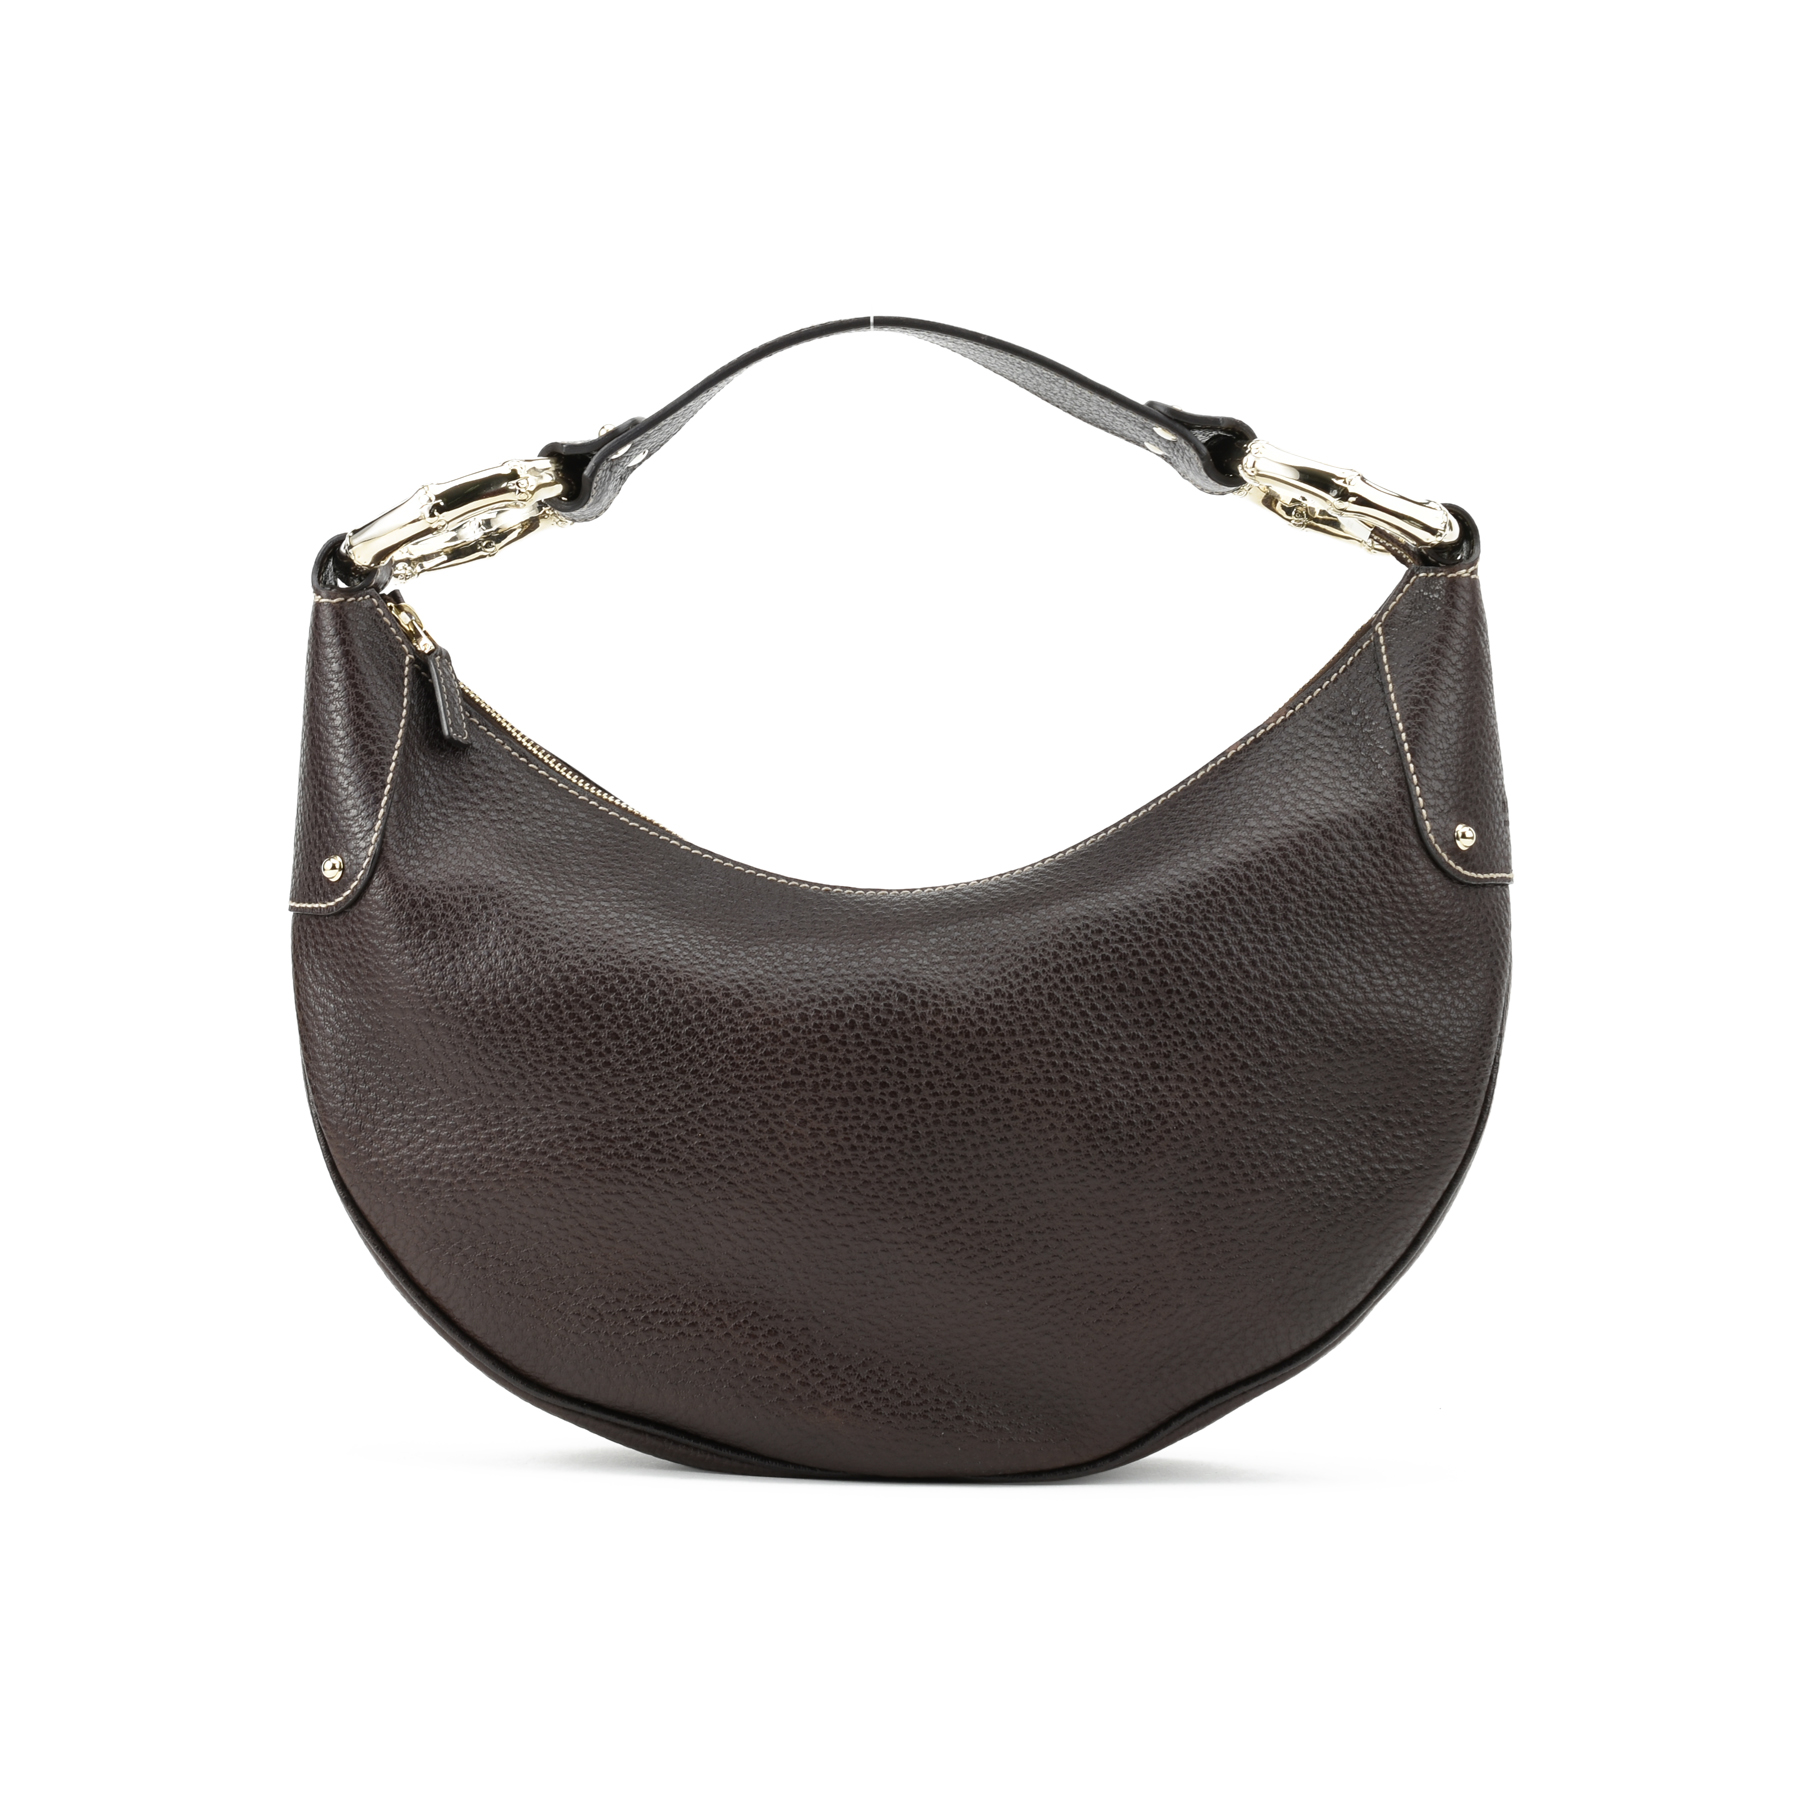 67a0ad55a Authentic Second Hand Gucci Half Moon Bamboo Hobo Bag (PSS-397-00007) - THE  FIFTH COLLECTION